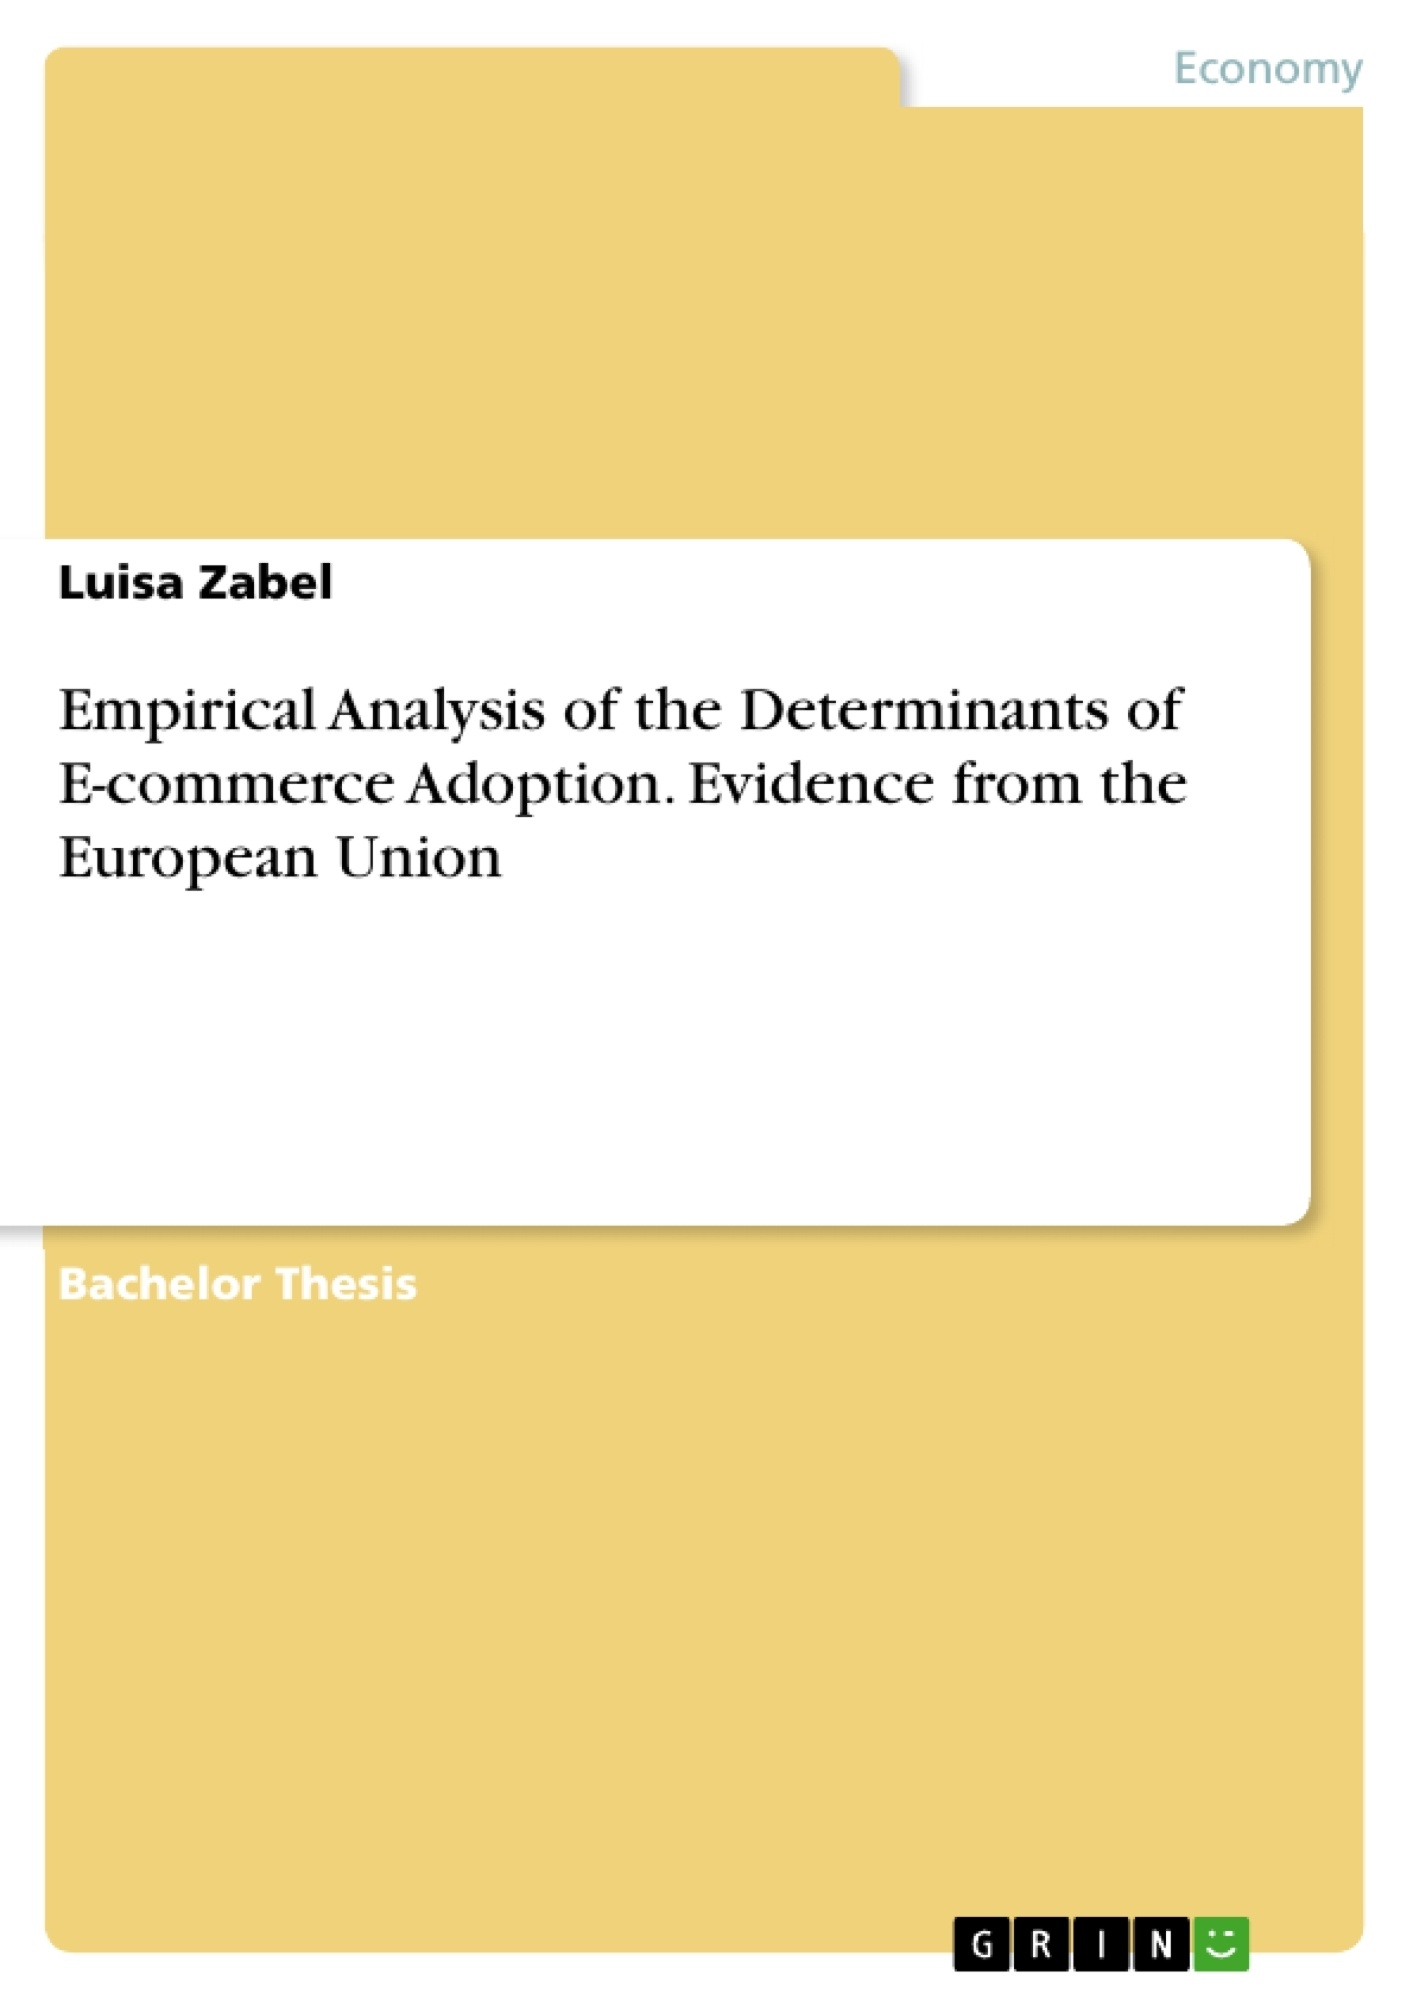 Title: Empirical Analysis of the Determinants of E-commerce Adoption. Evidence from the European Union